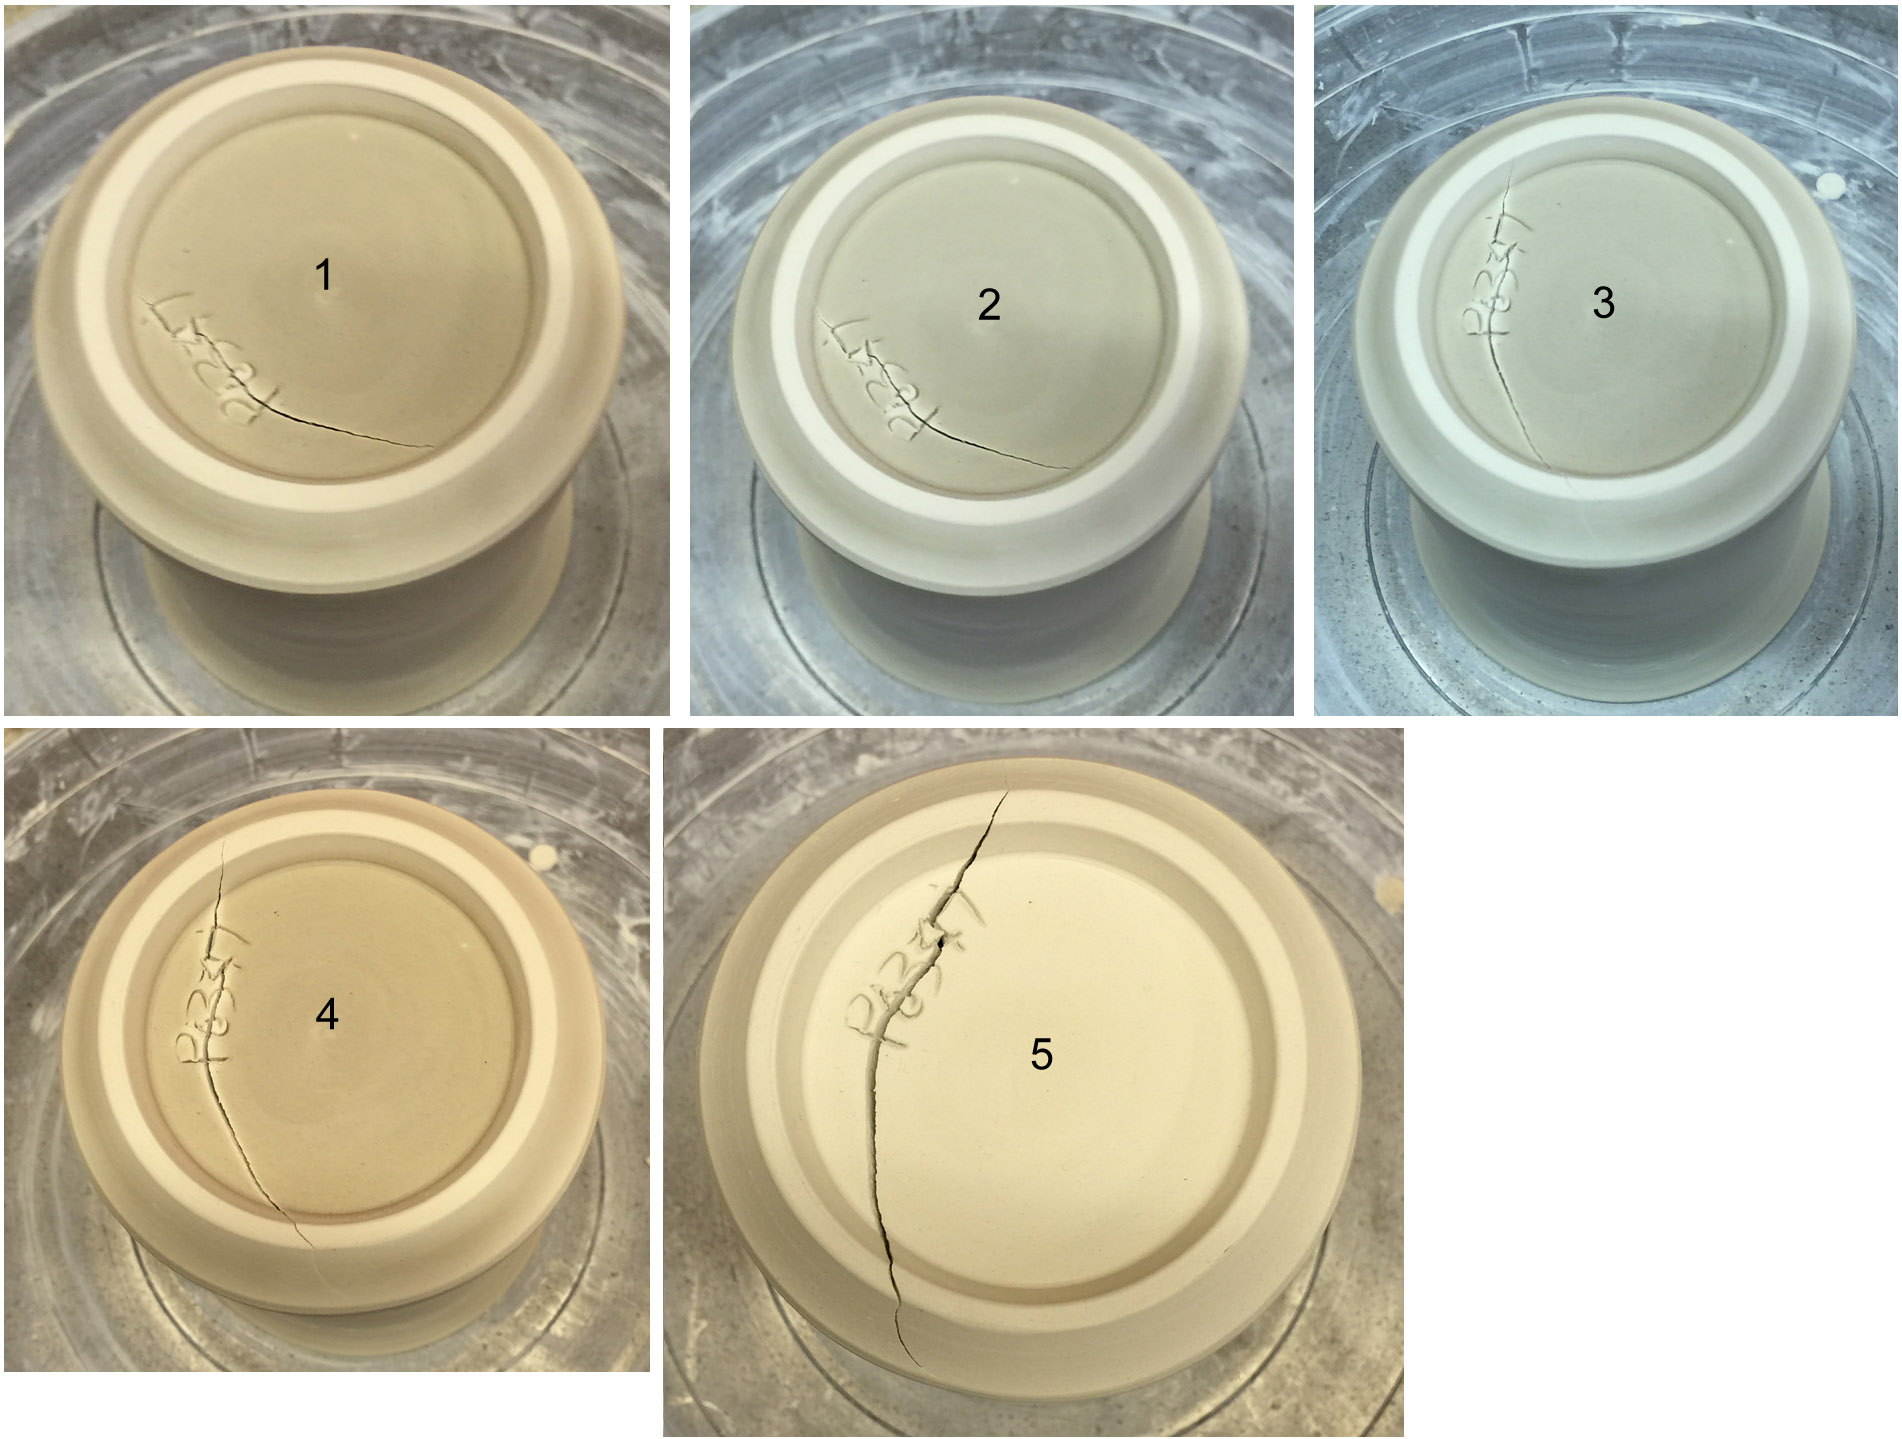 Why do cracks across the base of ware form an S shape?